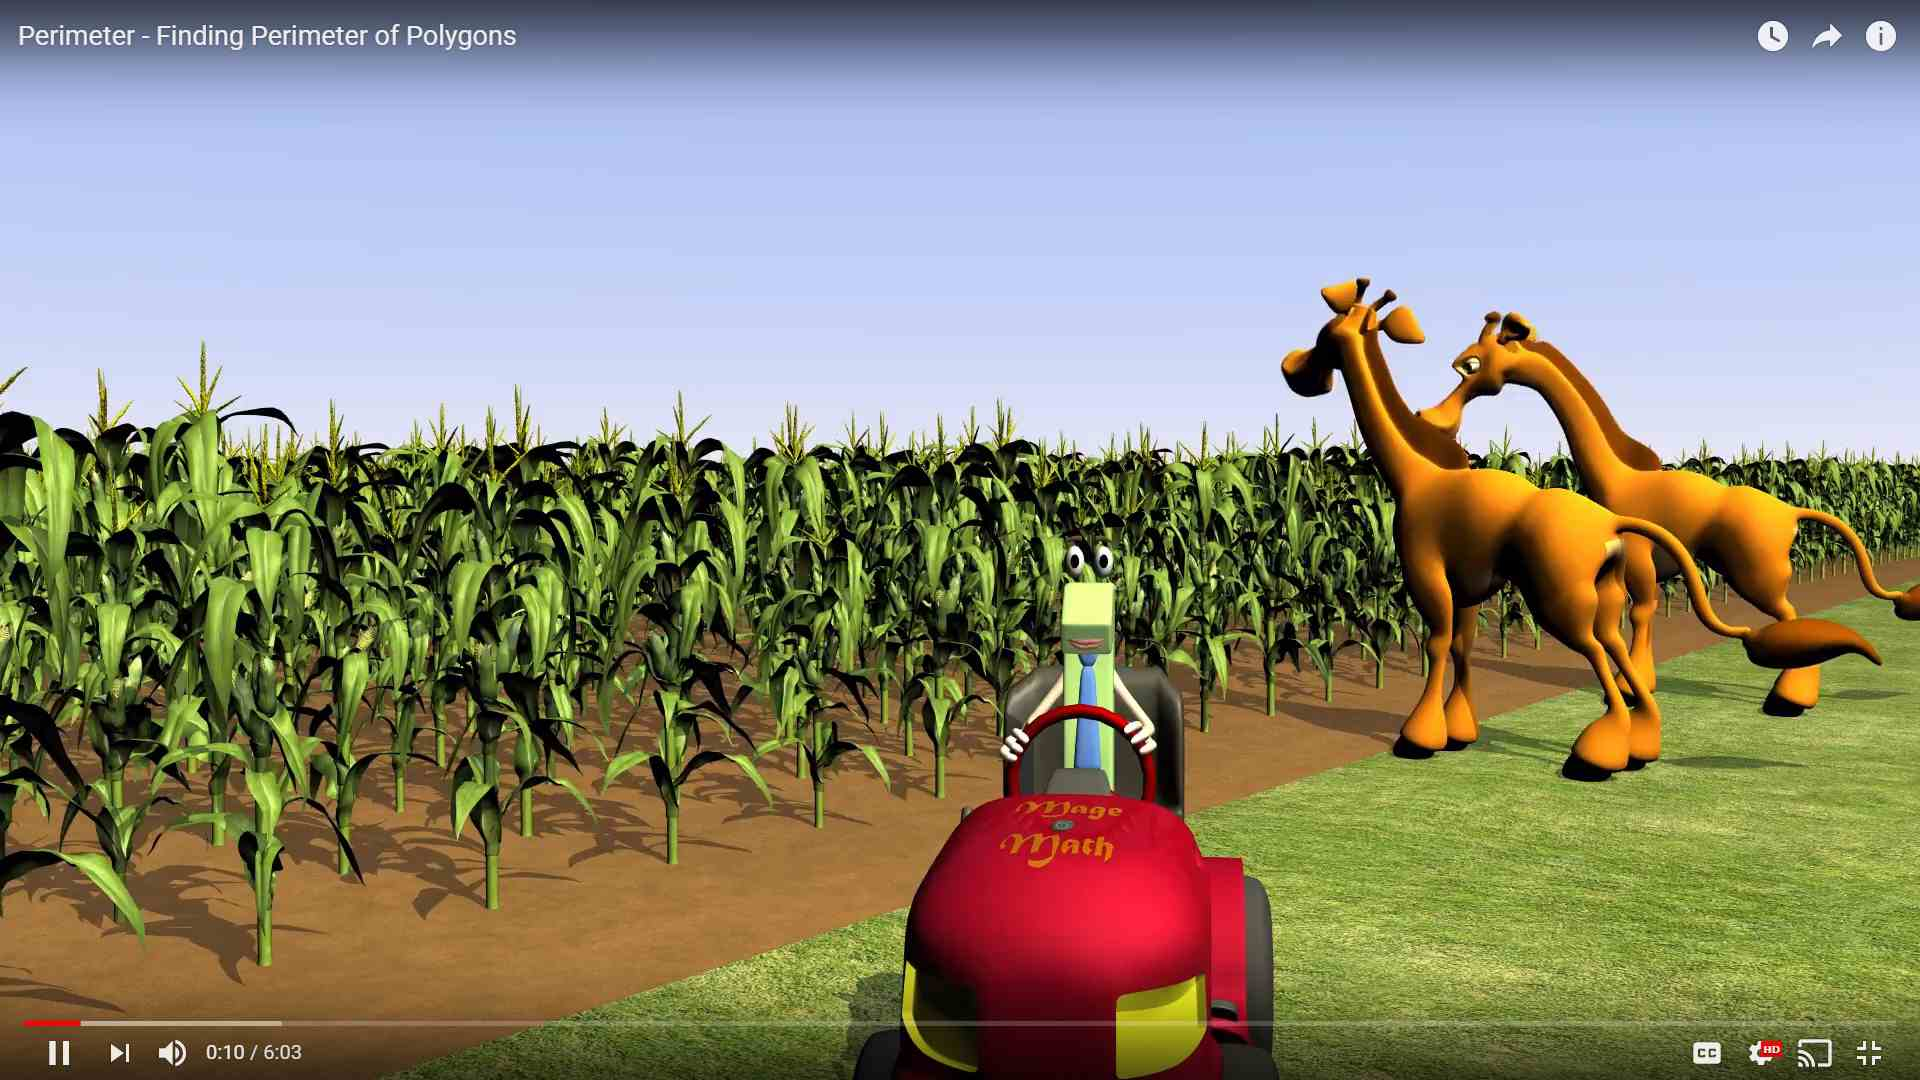 Two giraffes looking into a corn field behind a lizard driving a vehicle